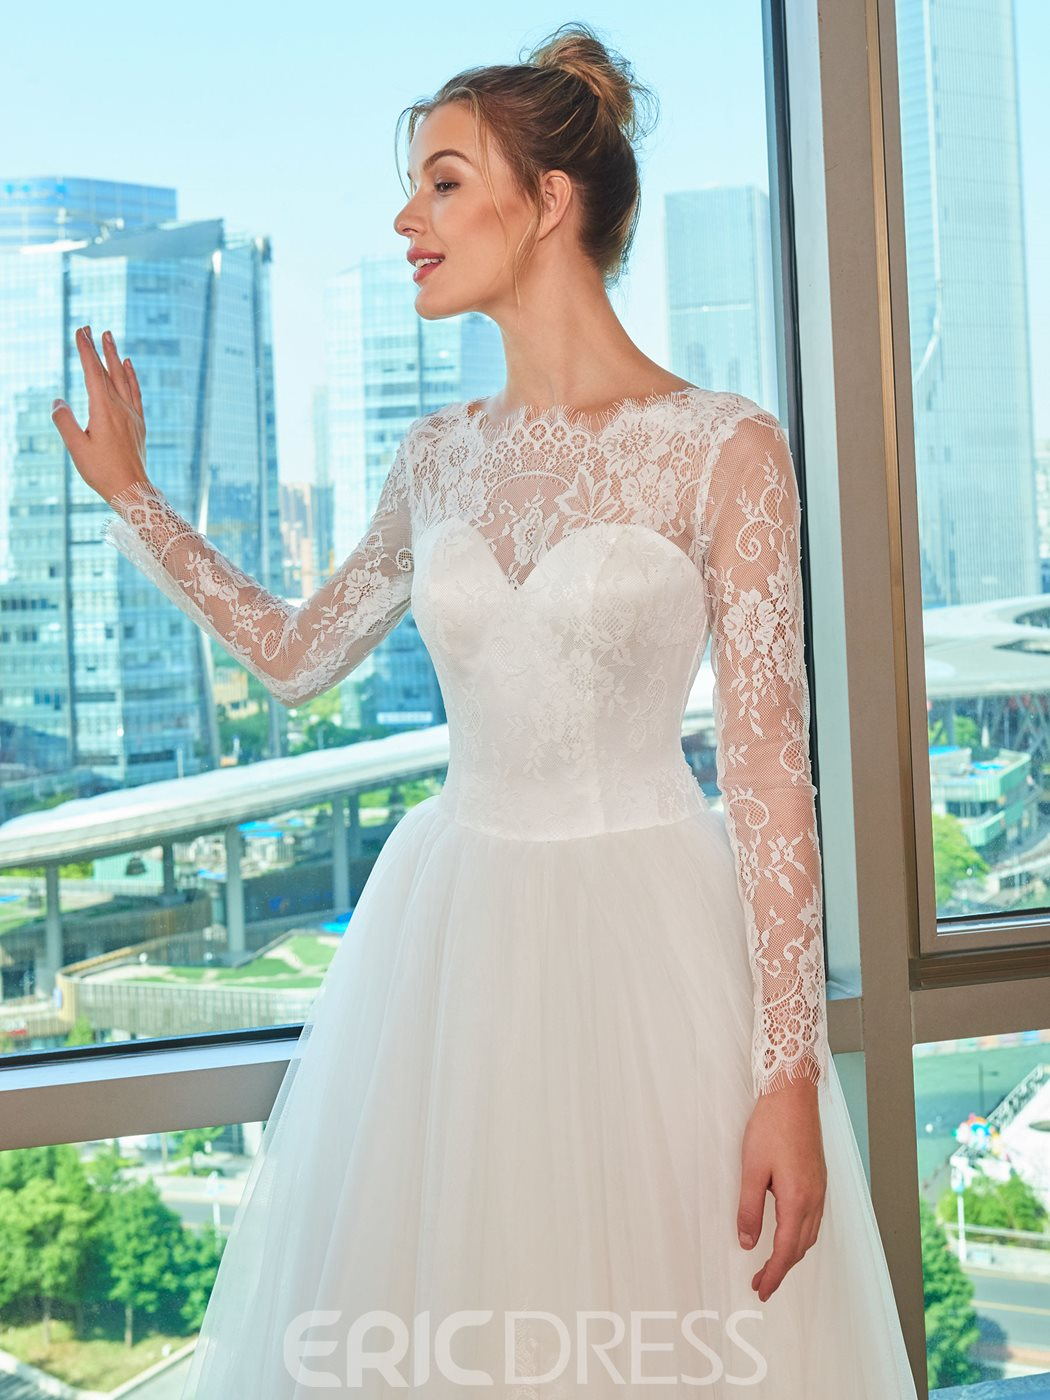 Ericdress Long Sleeves Lace Wedding Dress